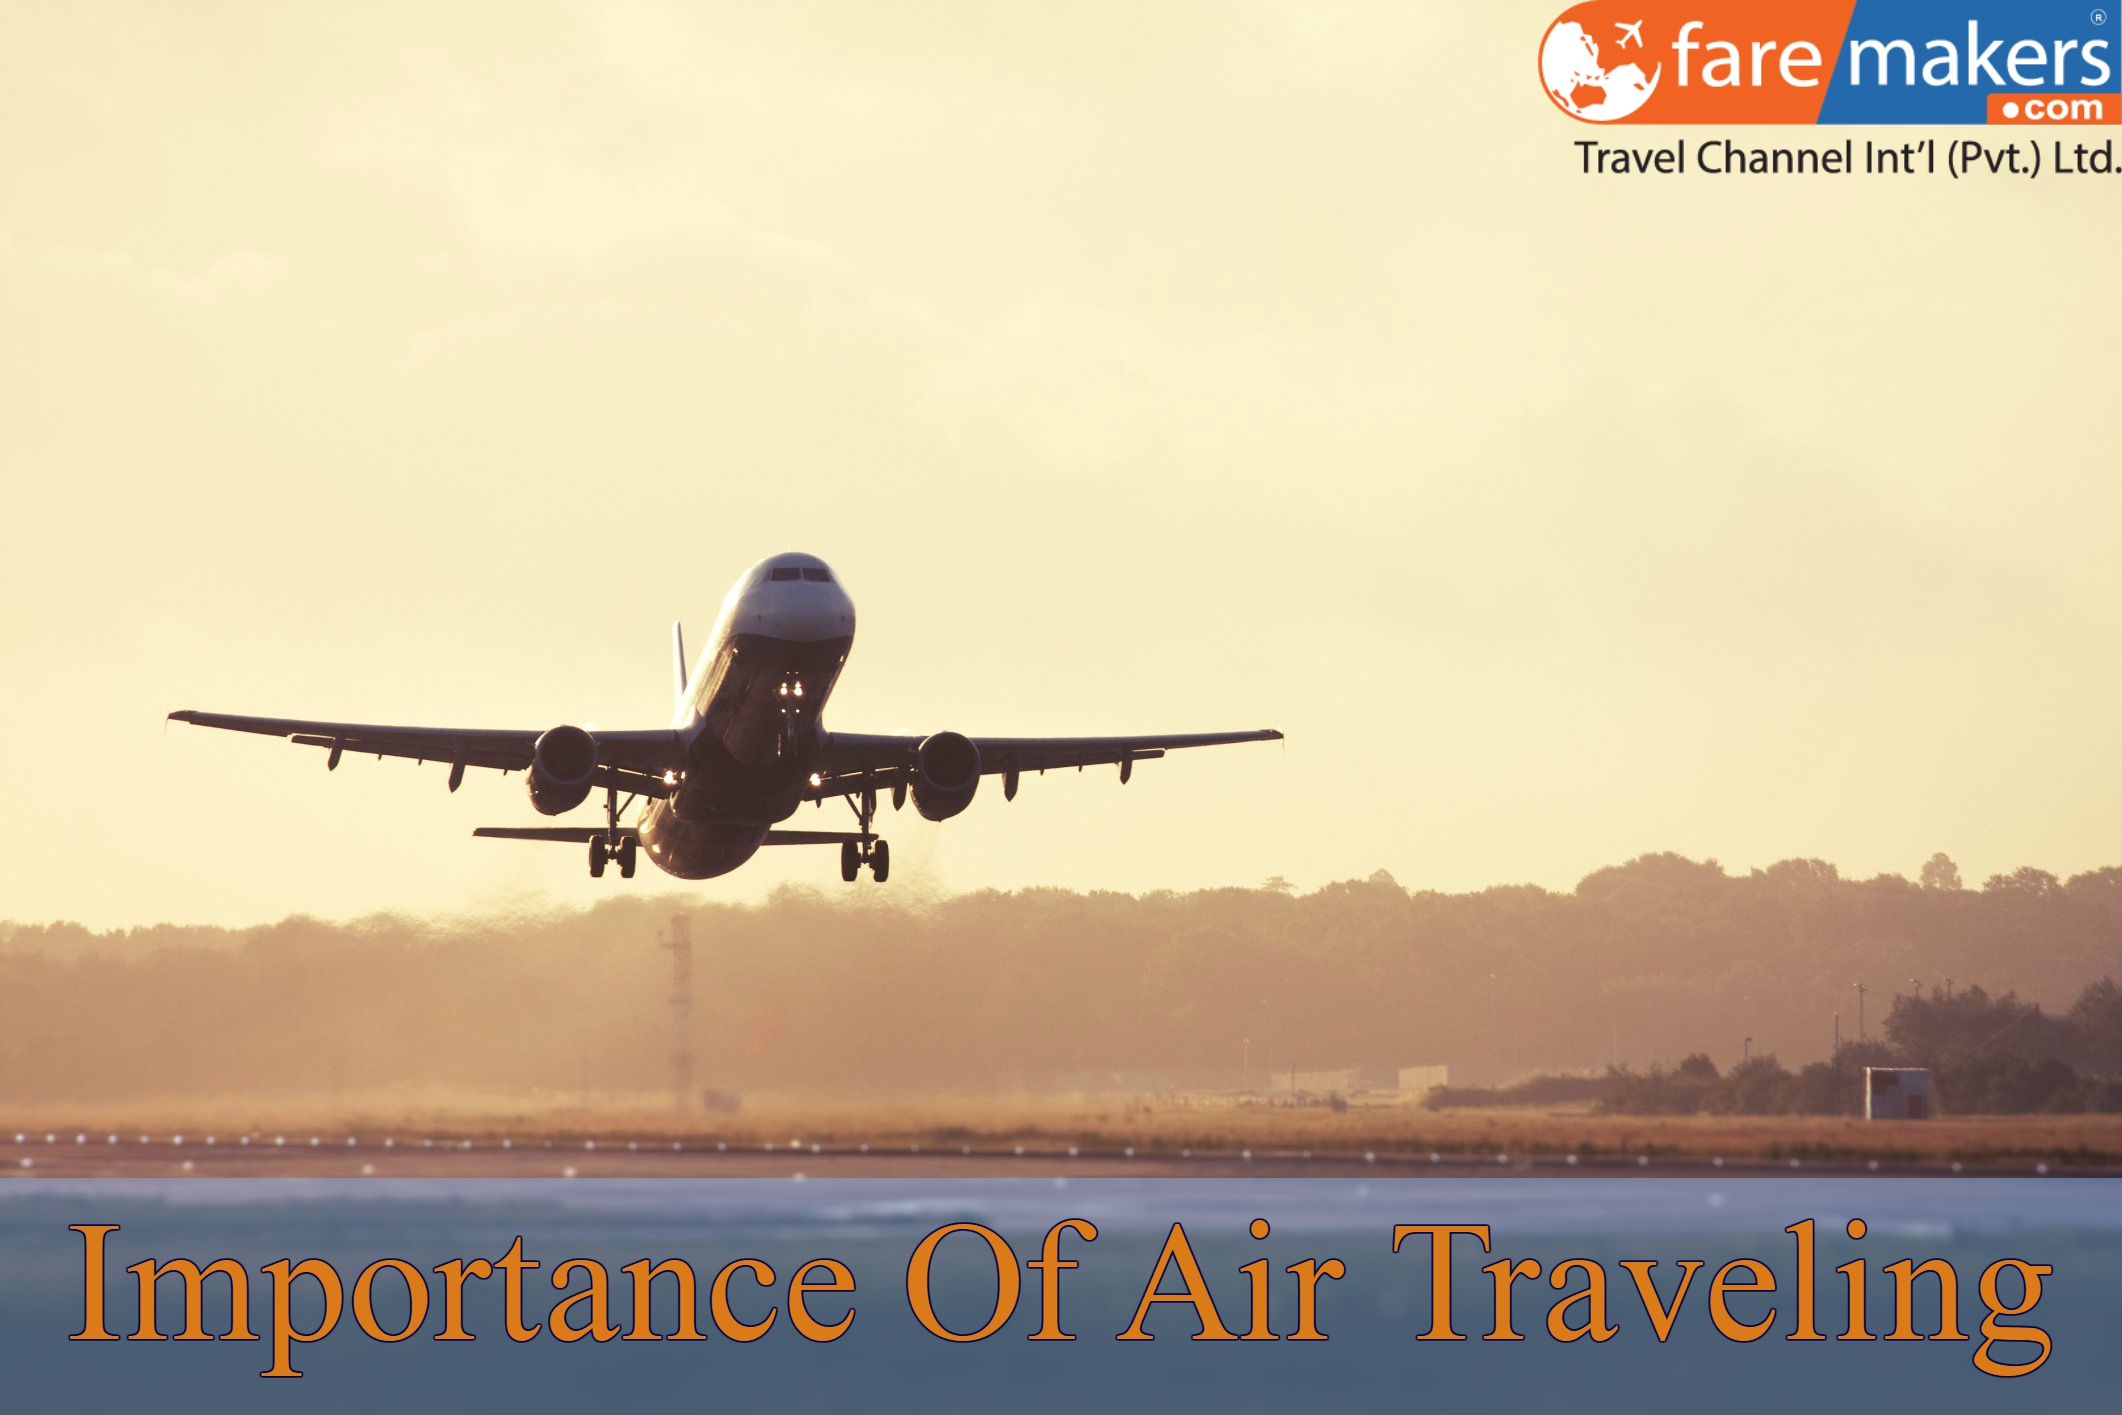 Recognize Importance of Air Traveling